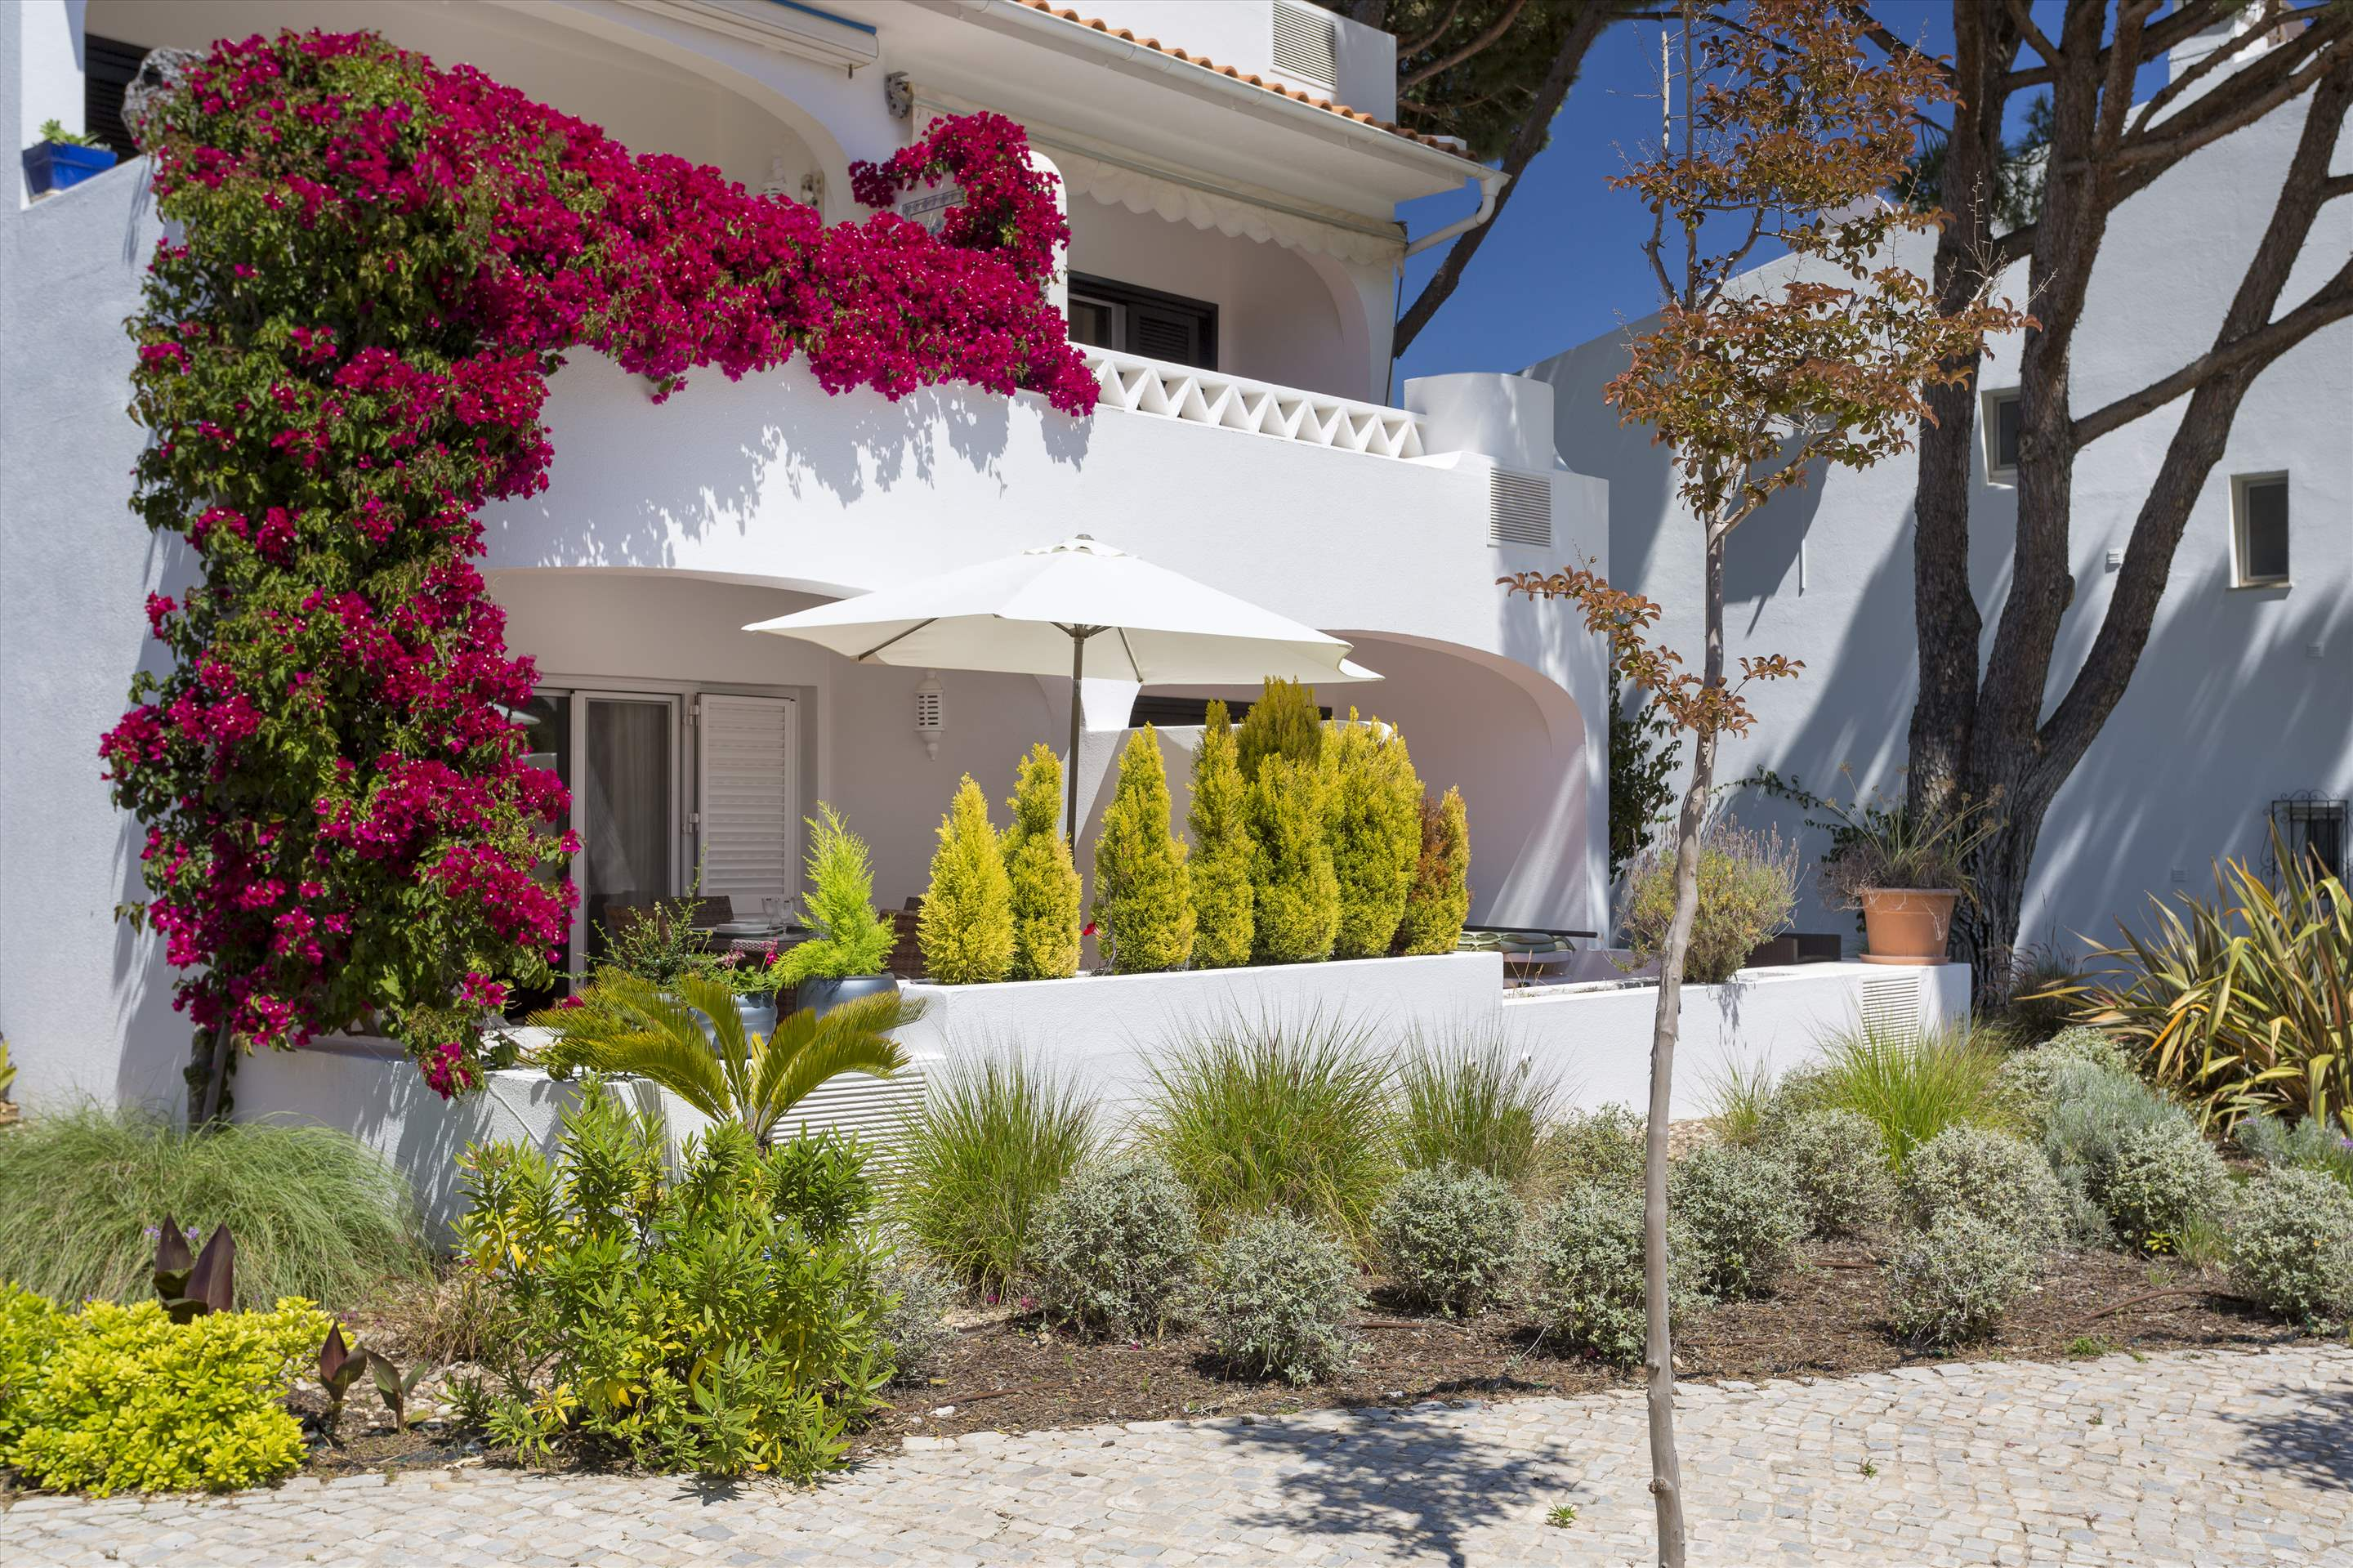 Apartment Bia, 1 bedroom apartment in Vale do Lobo, Algarve Photo #9